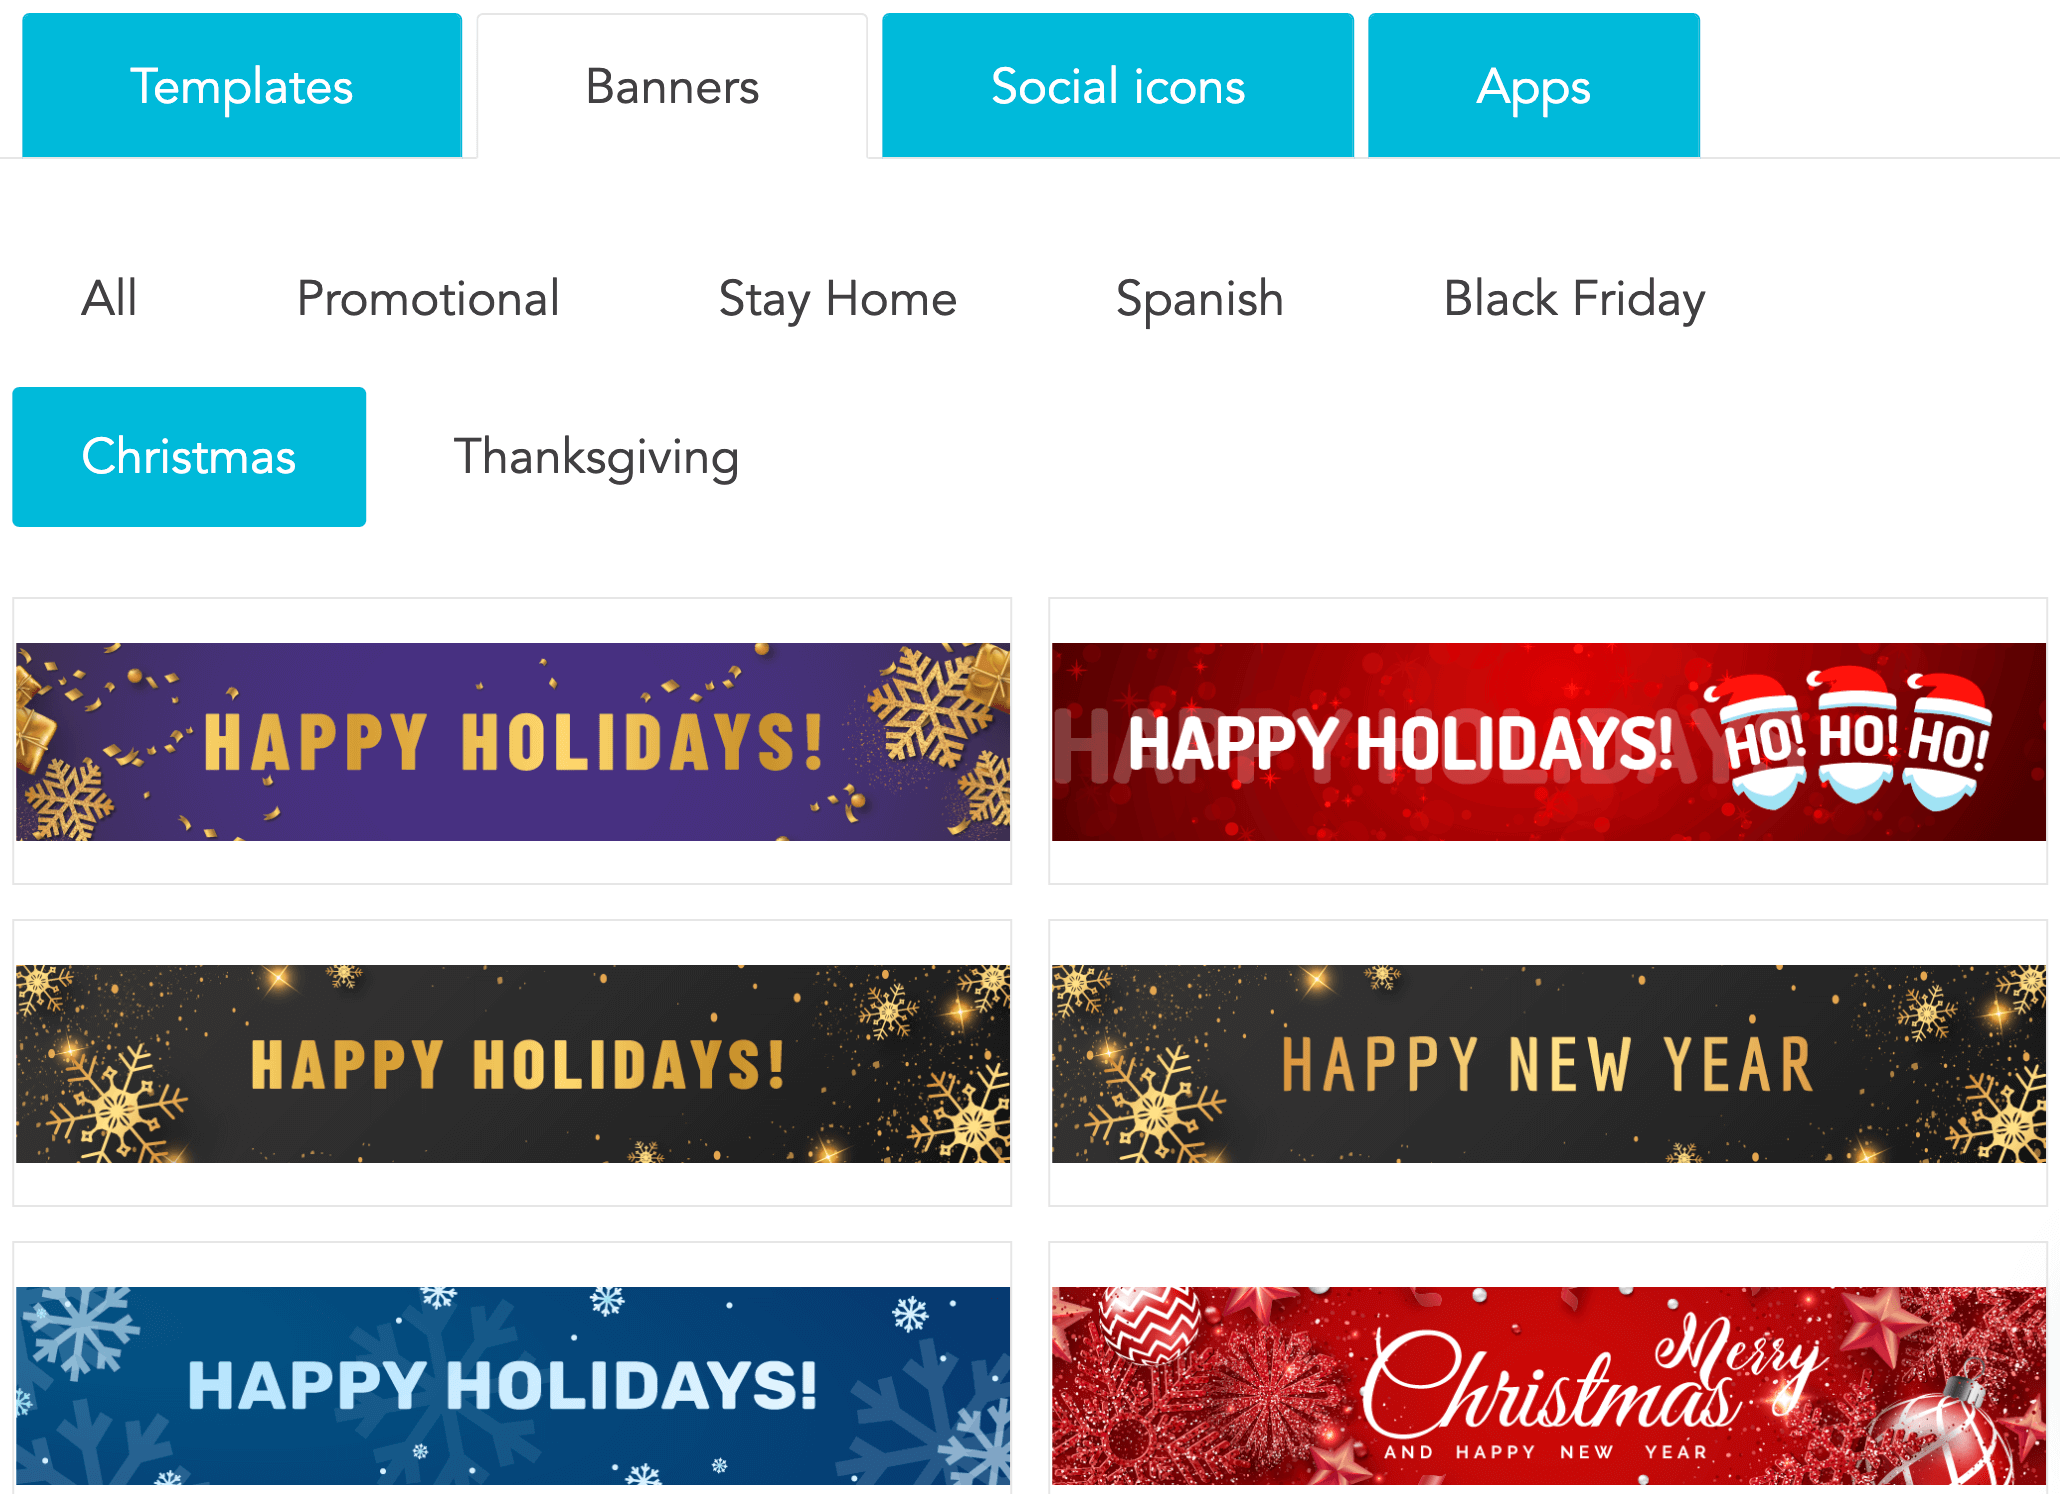 How To Choose A Perfect Christmas Banner For Email Signature In 2020 Newoldstamp